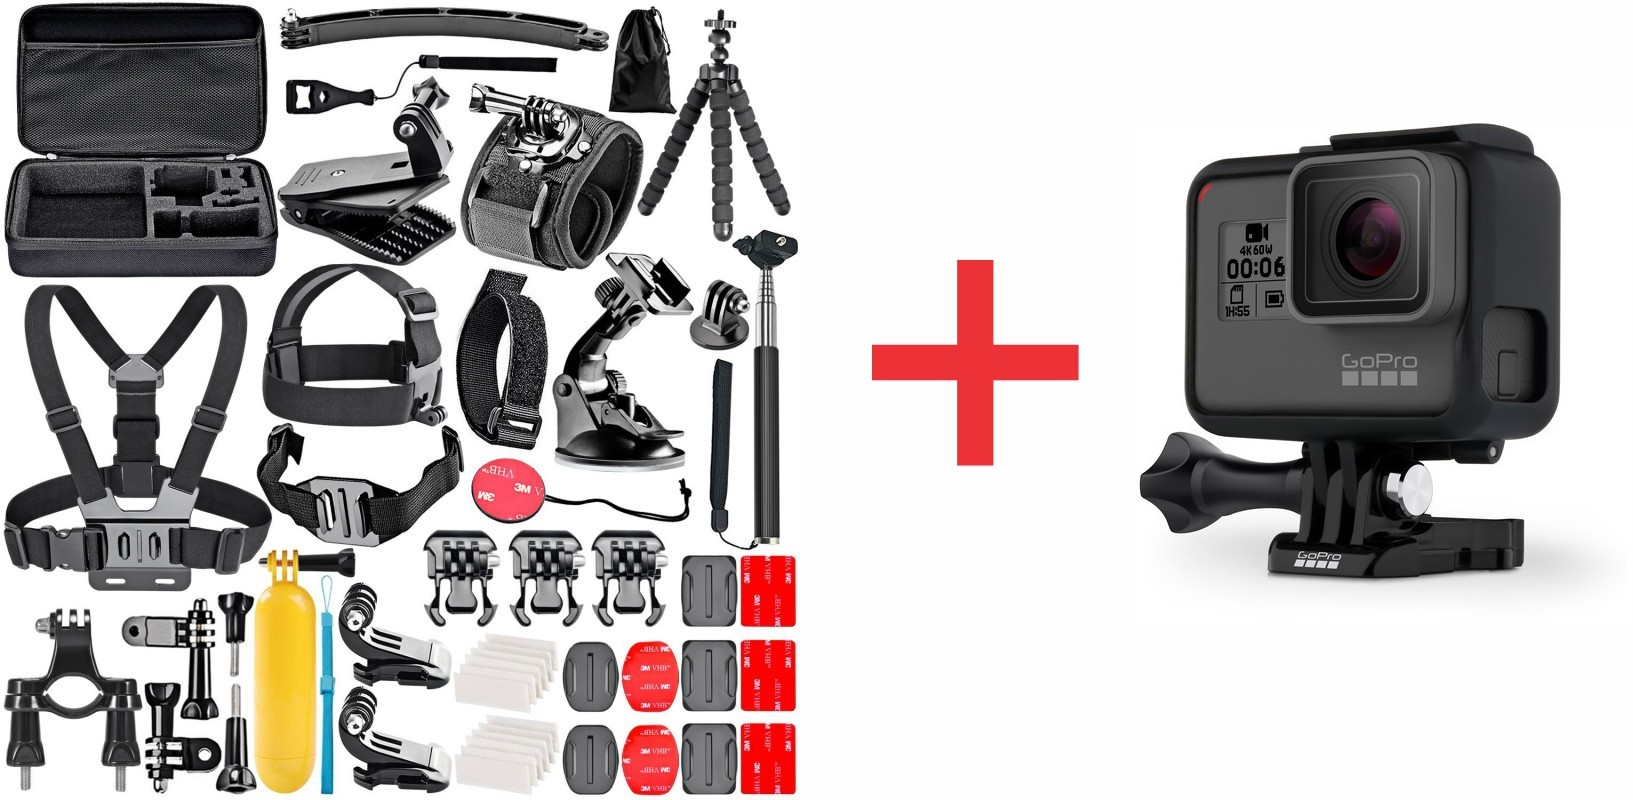 Gopro Hero 6 Black Full Hd Action Camera Plus 50 In 1 Accessory Kit Combo Deal Geewiz